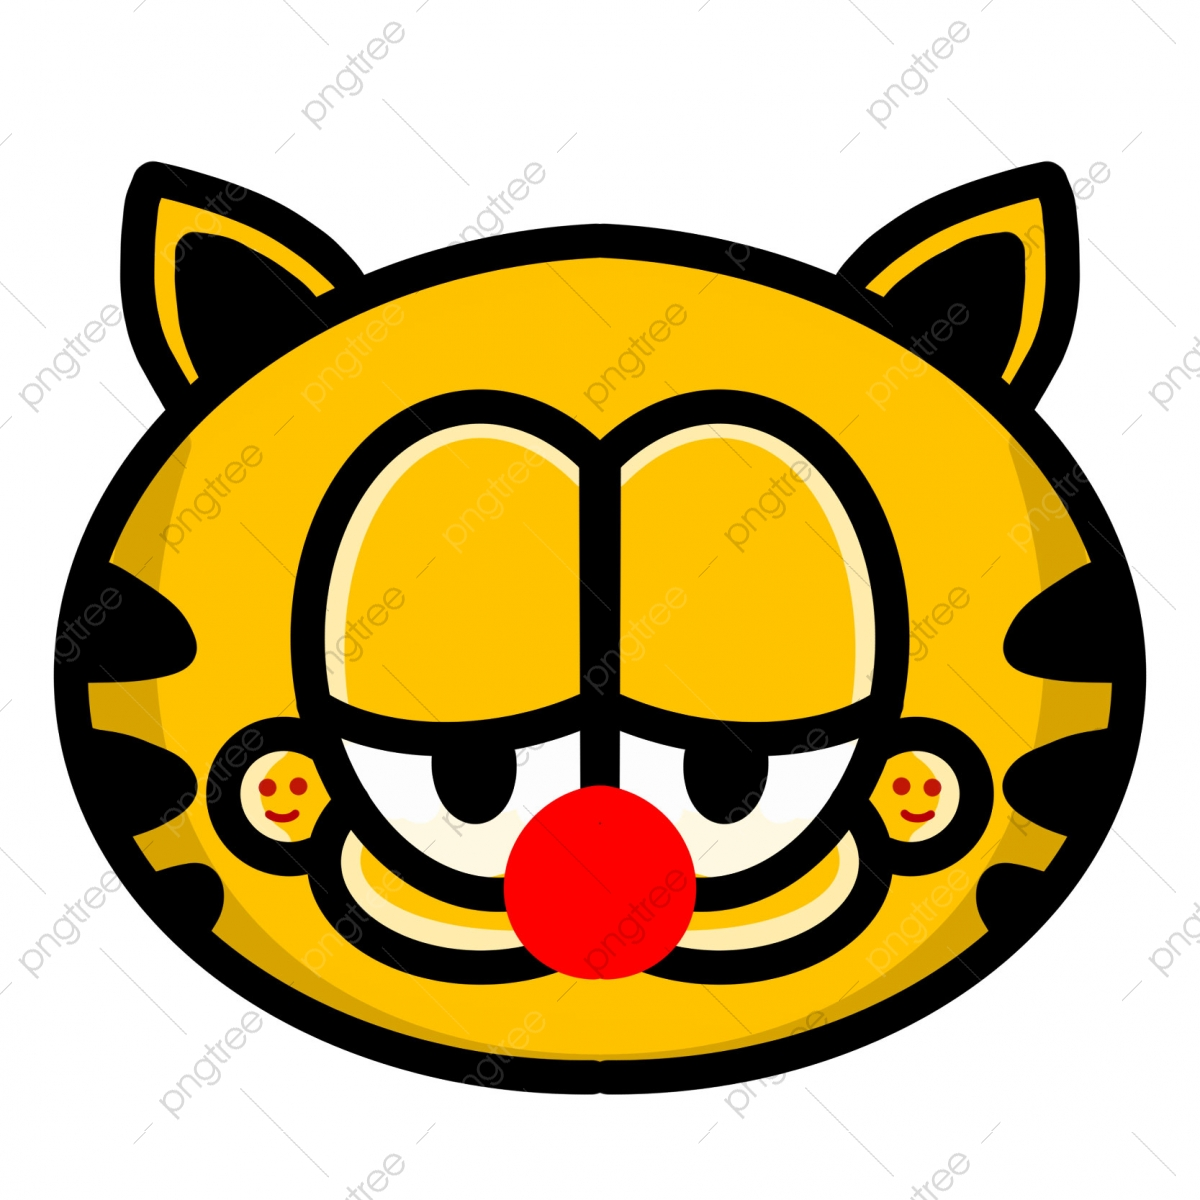 Cat Garfield Character Garfield Cat Cute Cat Png Transparent Clipart Image And Psd File For Free Download